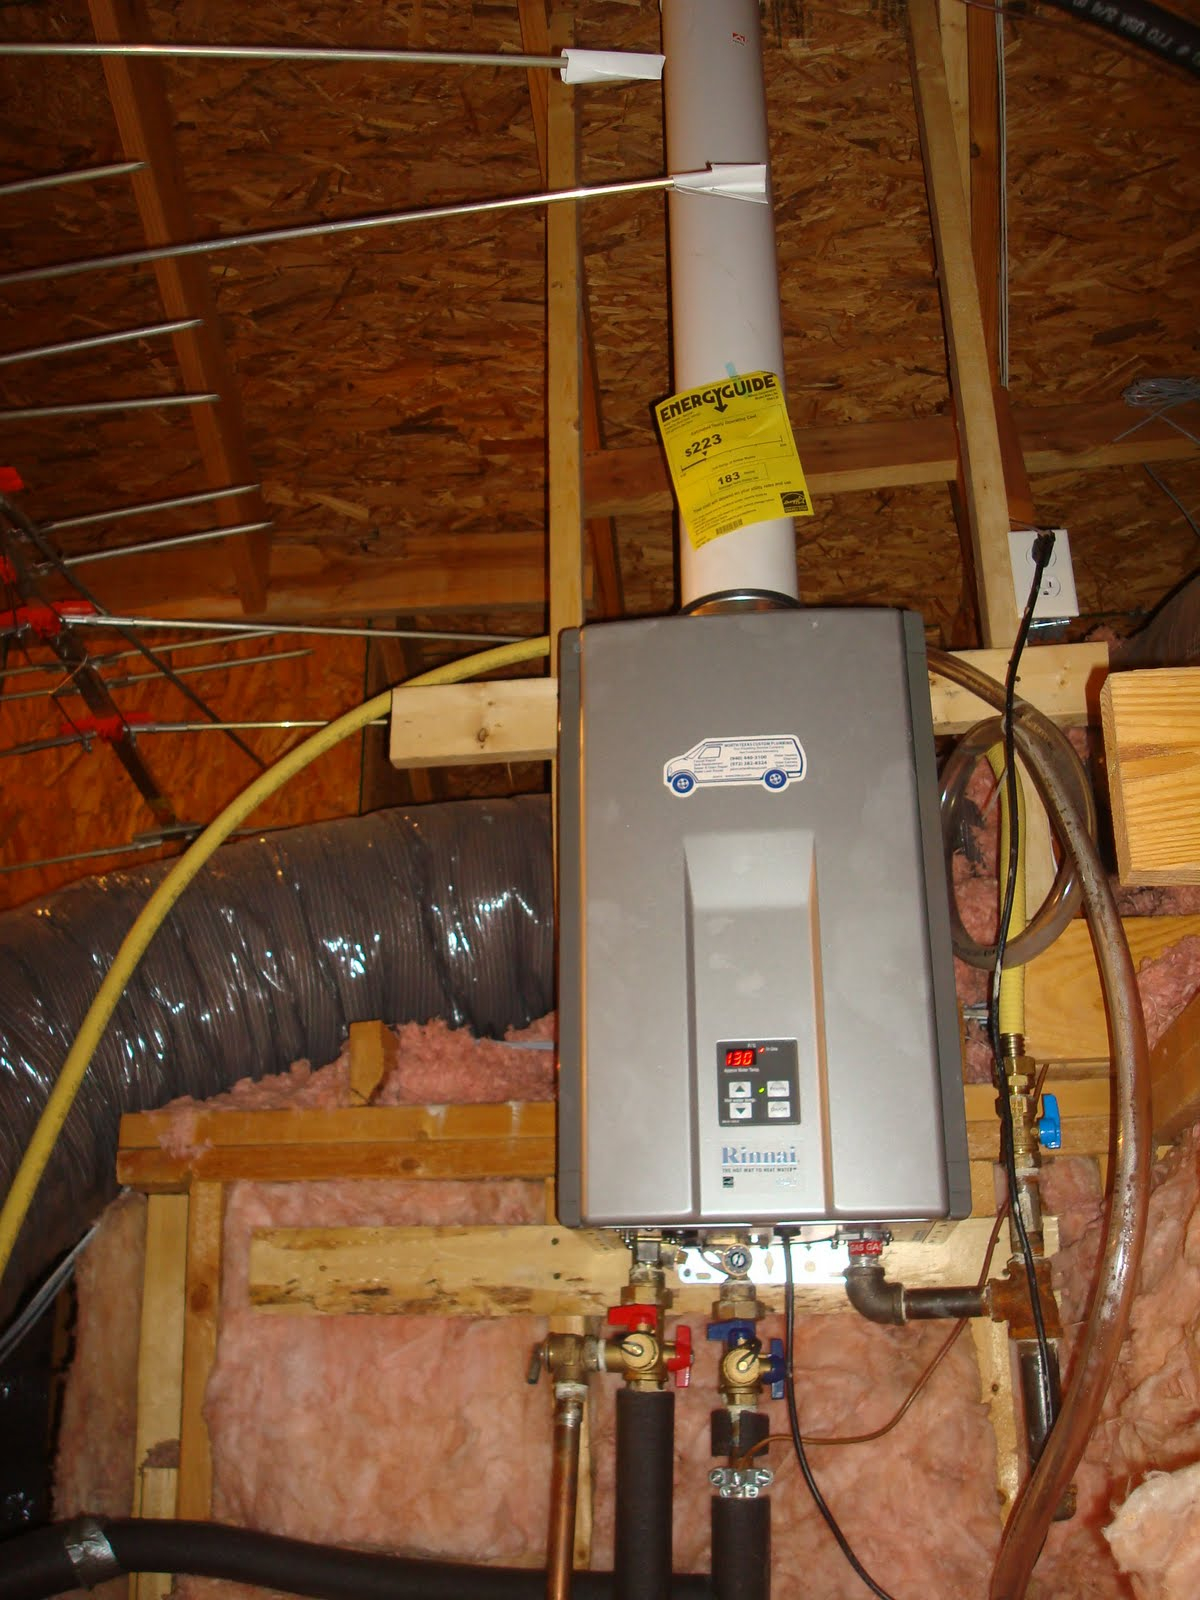 Family Adventures Tankless Water Heater intended for size 1200 X 1600